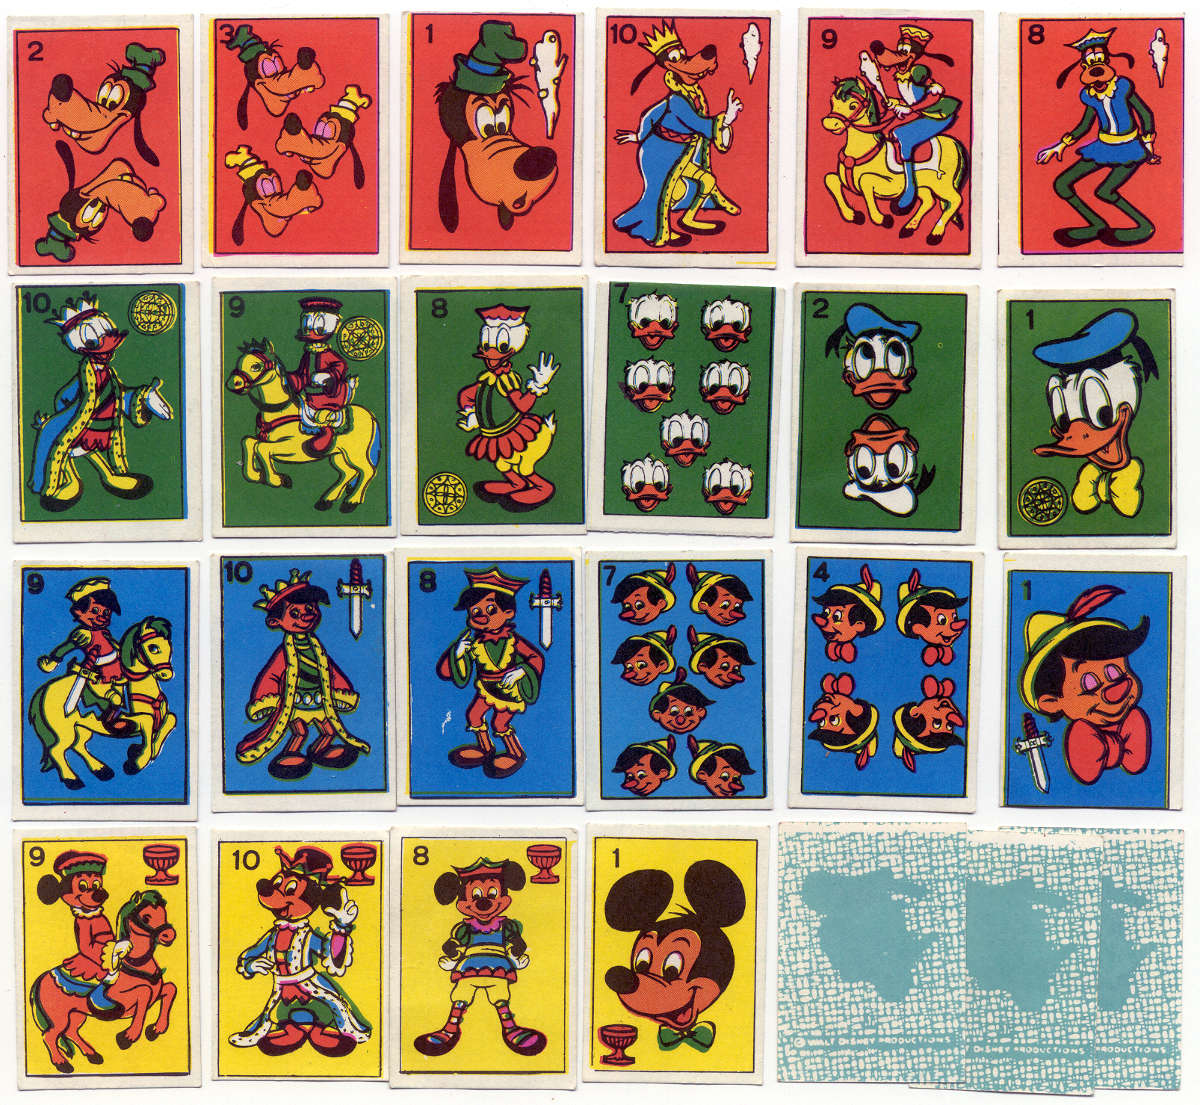 Children's miniature Walt Disney playing cards, Uruguay, c.1990